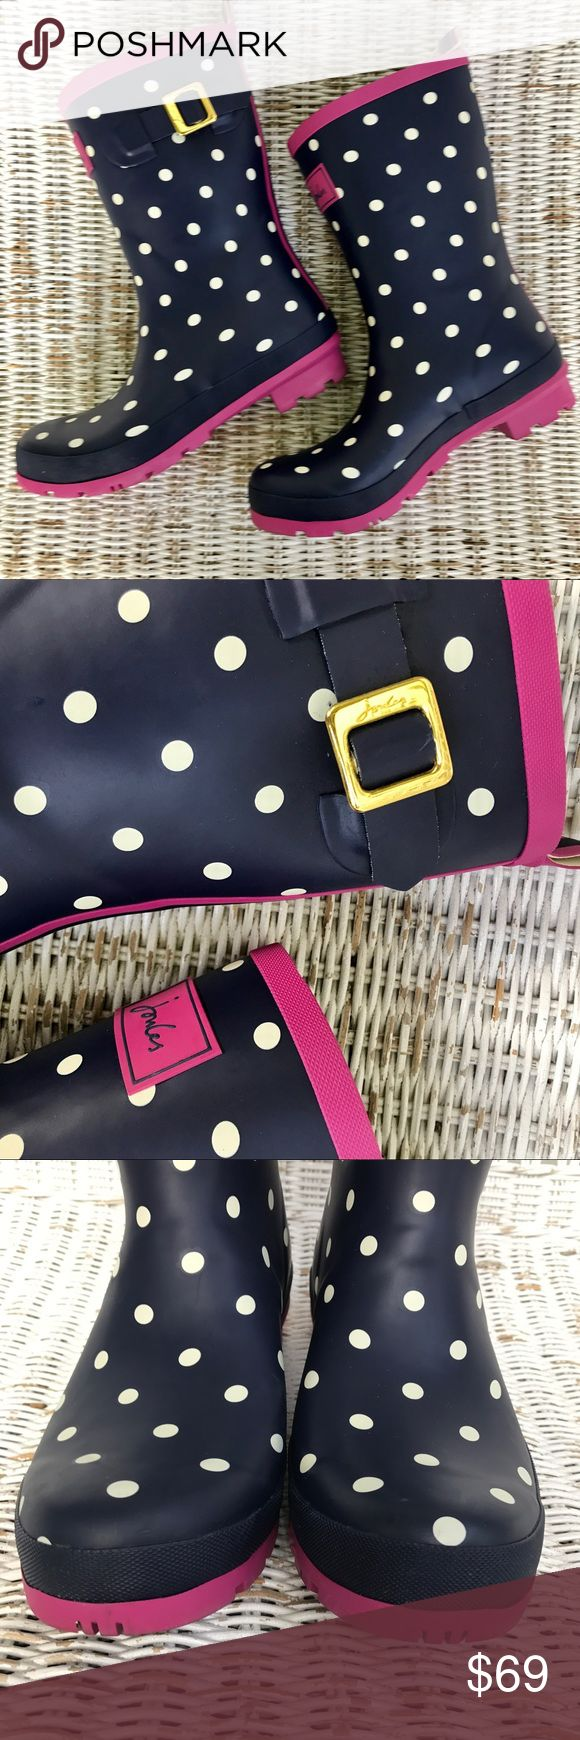 ✂️EUC || JOULES || 'Molly Welly' Navy blue wellies with cute white polka dots and pink accents. The perfect boots for a rainy / snowy day!!! Very sturdy and well-made. ▪️Only worn once or twice ▪️Excellent condition -- only signs of wear on bottom of soles ▪️UK SIZE 7 || US SIZE 9 Joules Shoes Winter & Rain Boots